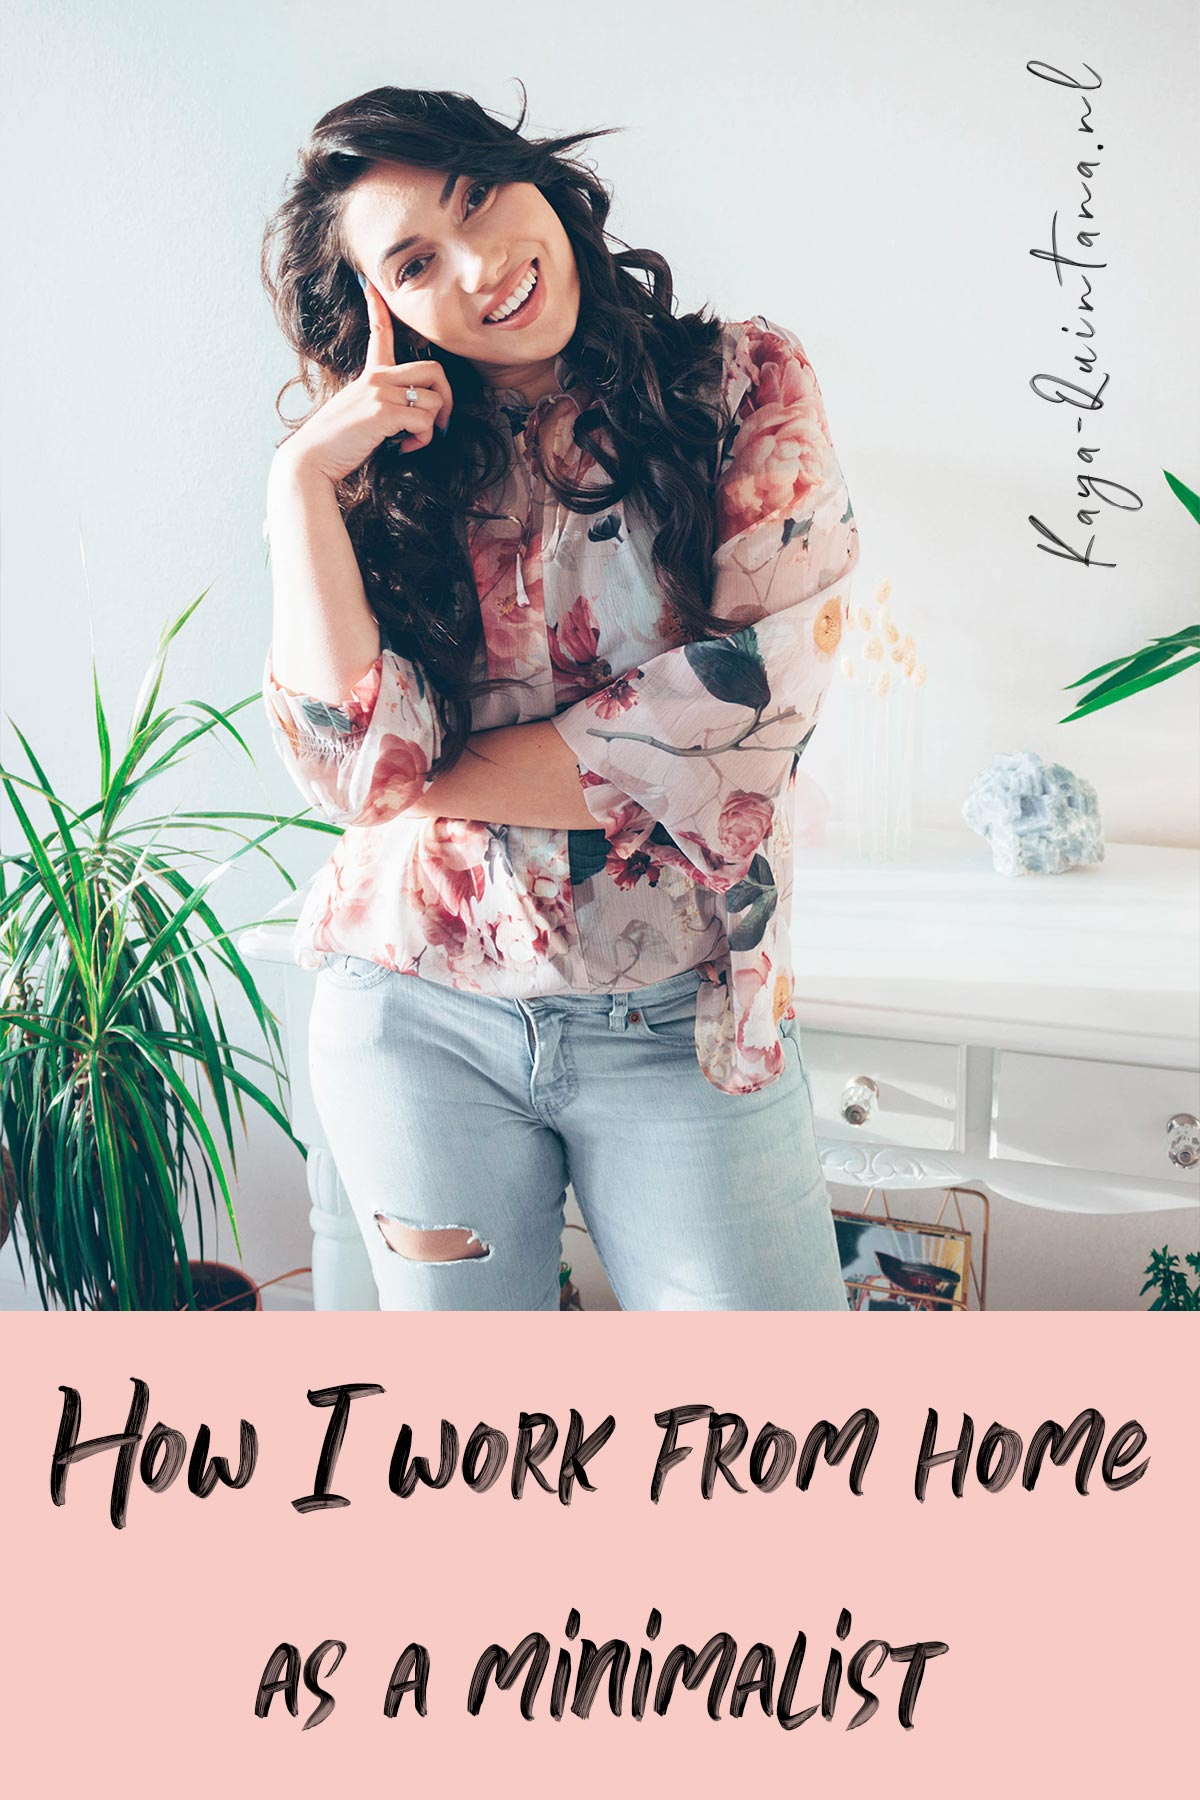 how I work from home as a minimalist